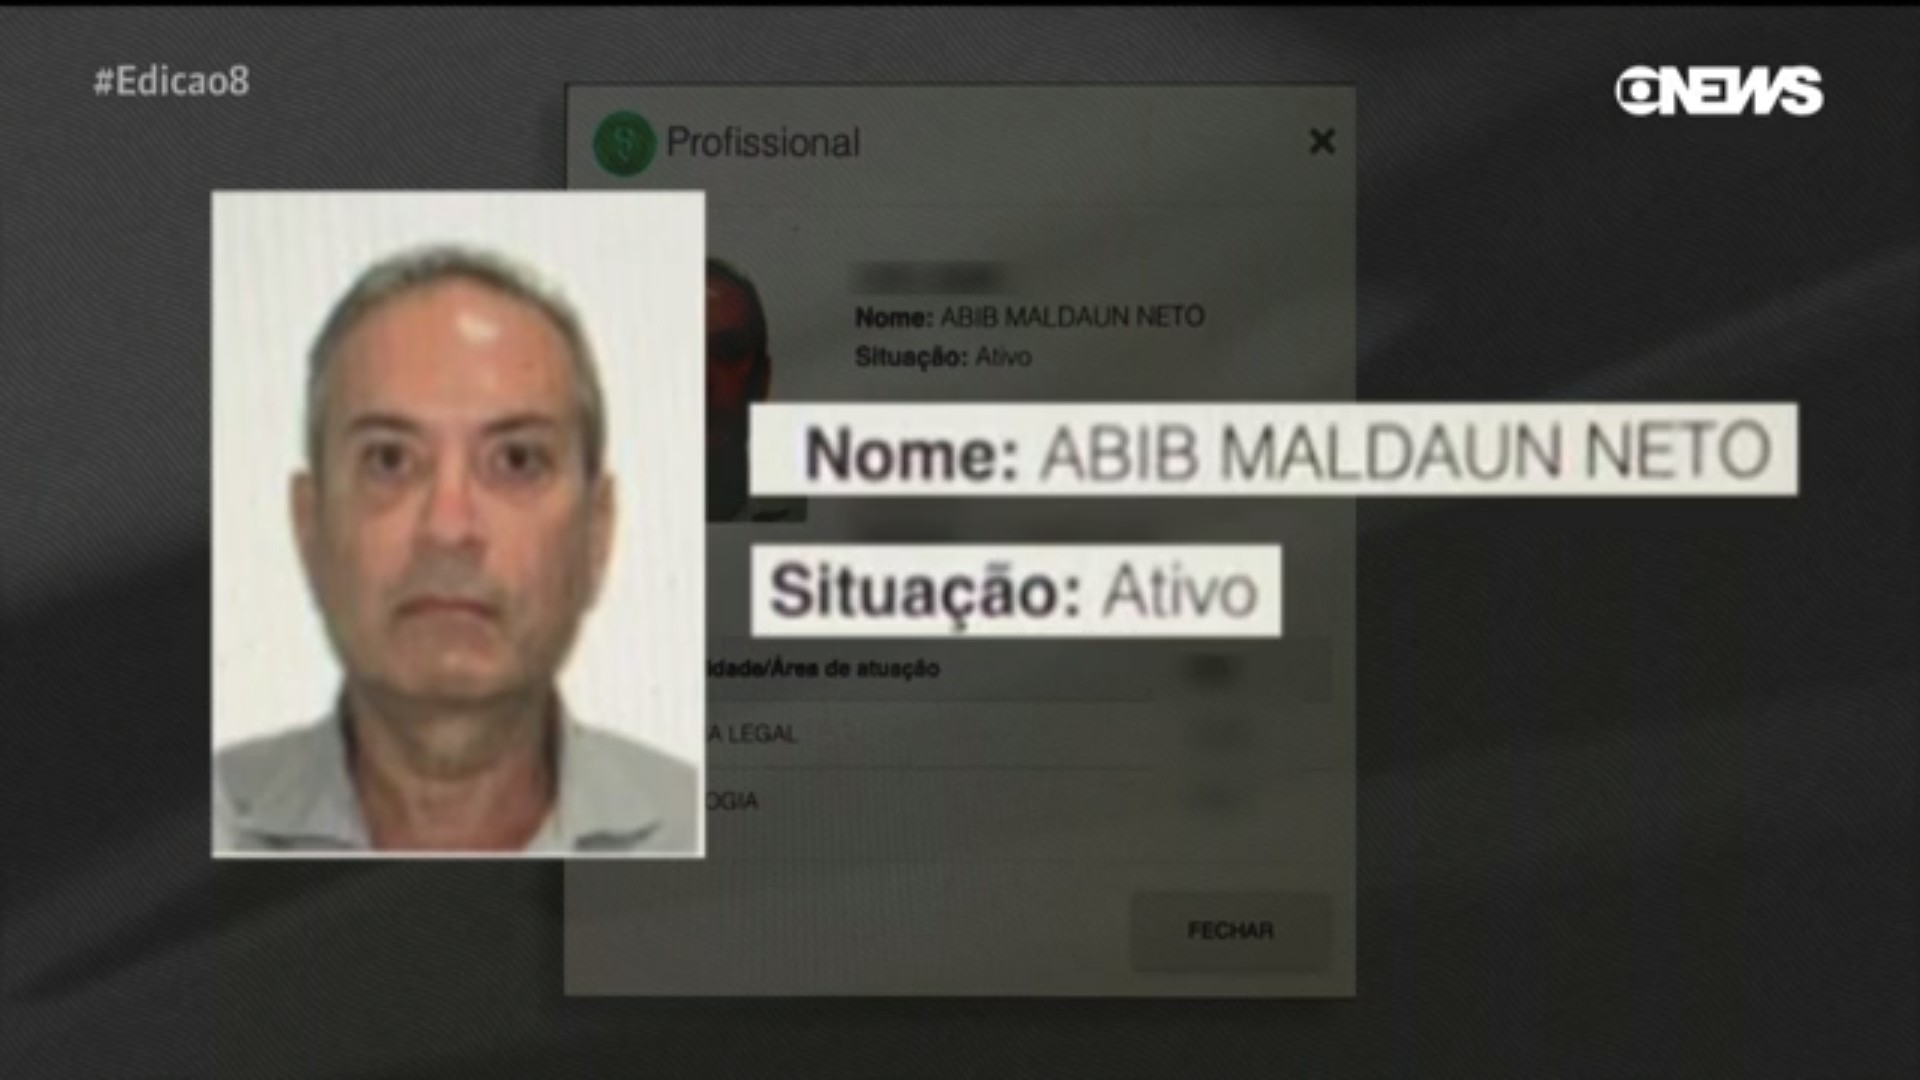 Médico nutrólogo de SP denunciado por abuso sexual de ex-pacientes não comparece a depoimento no MP-SP